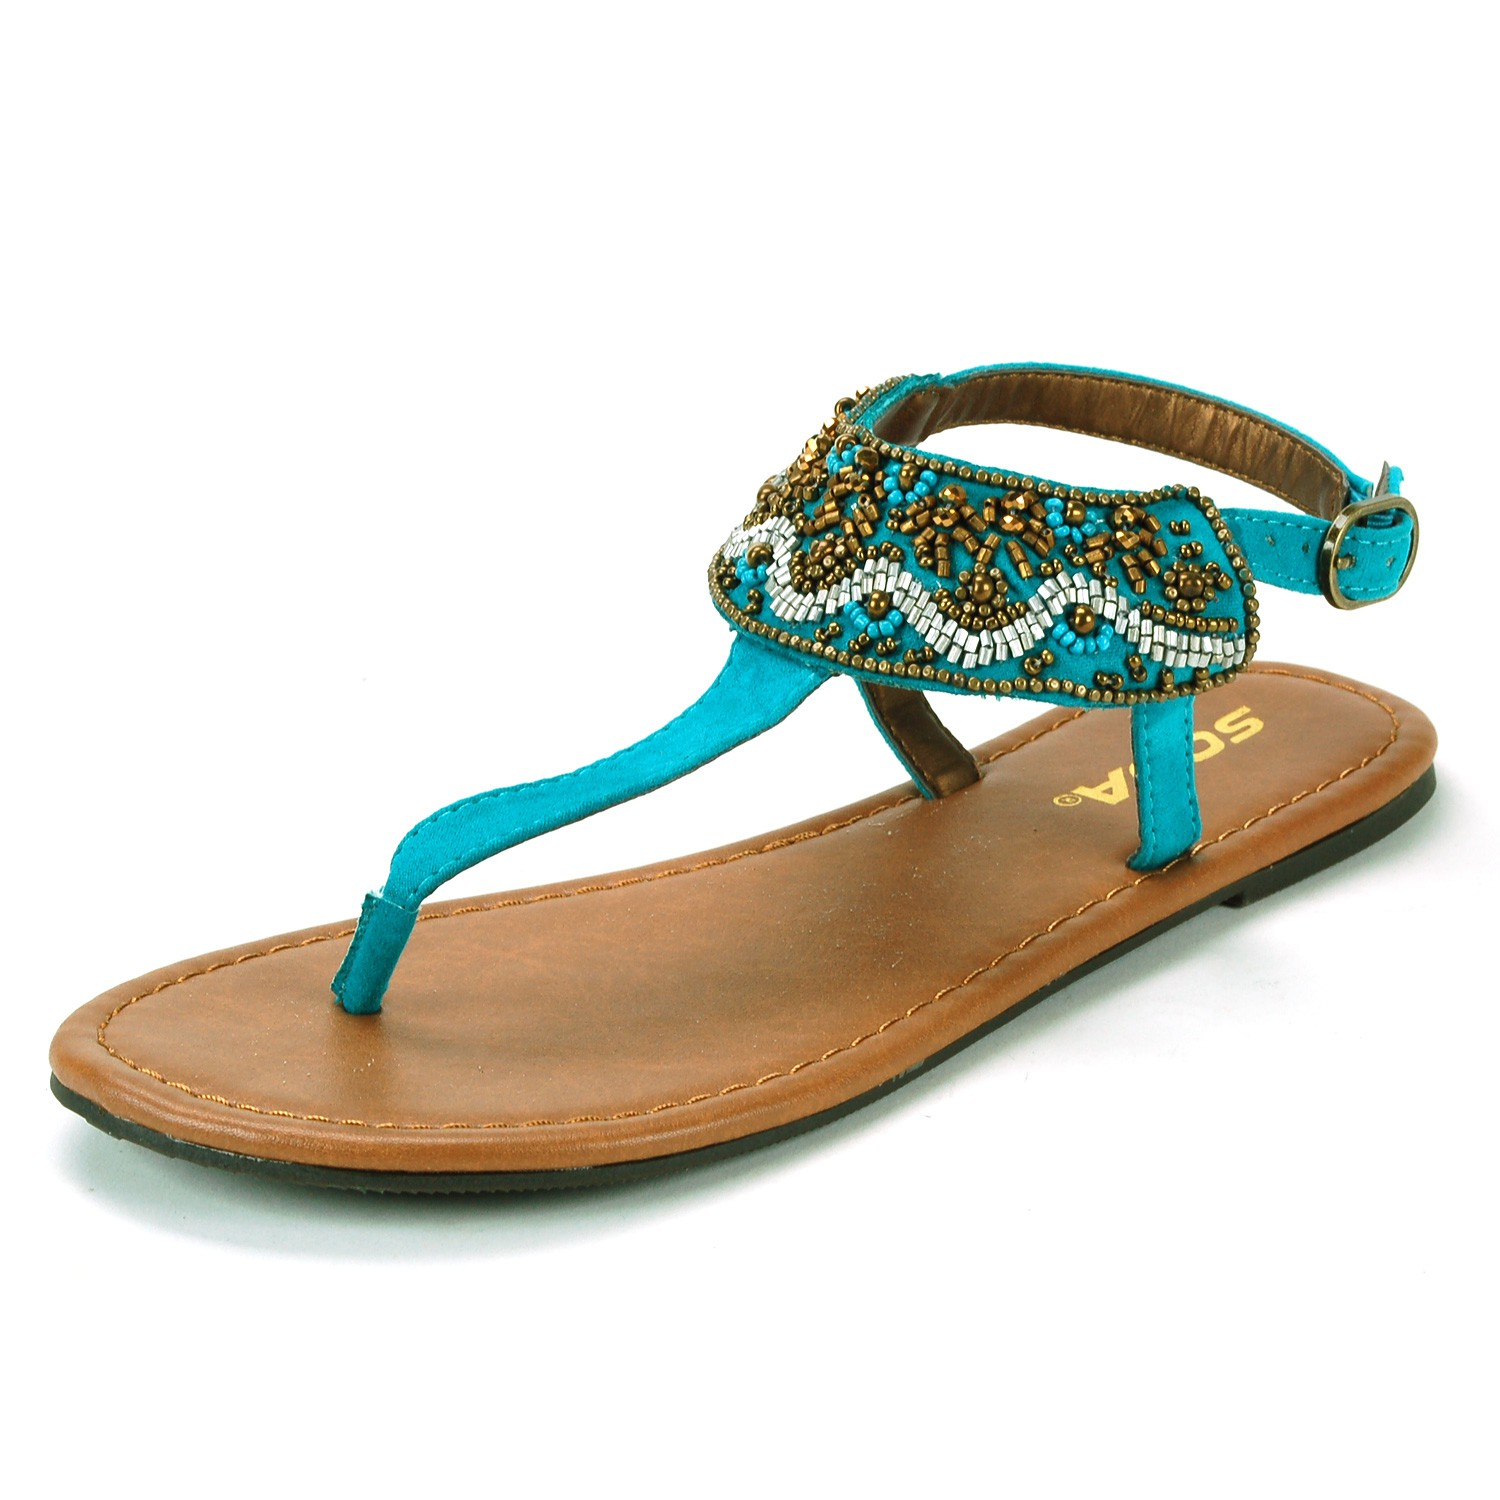 Womens T Strap Sandals Embroidered Dressy Flats Adjustable